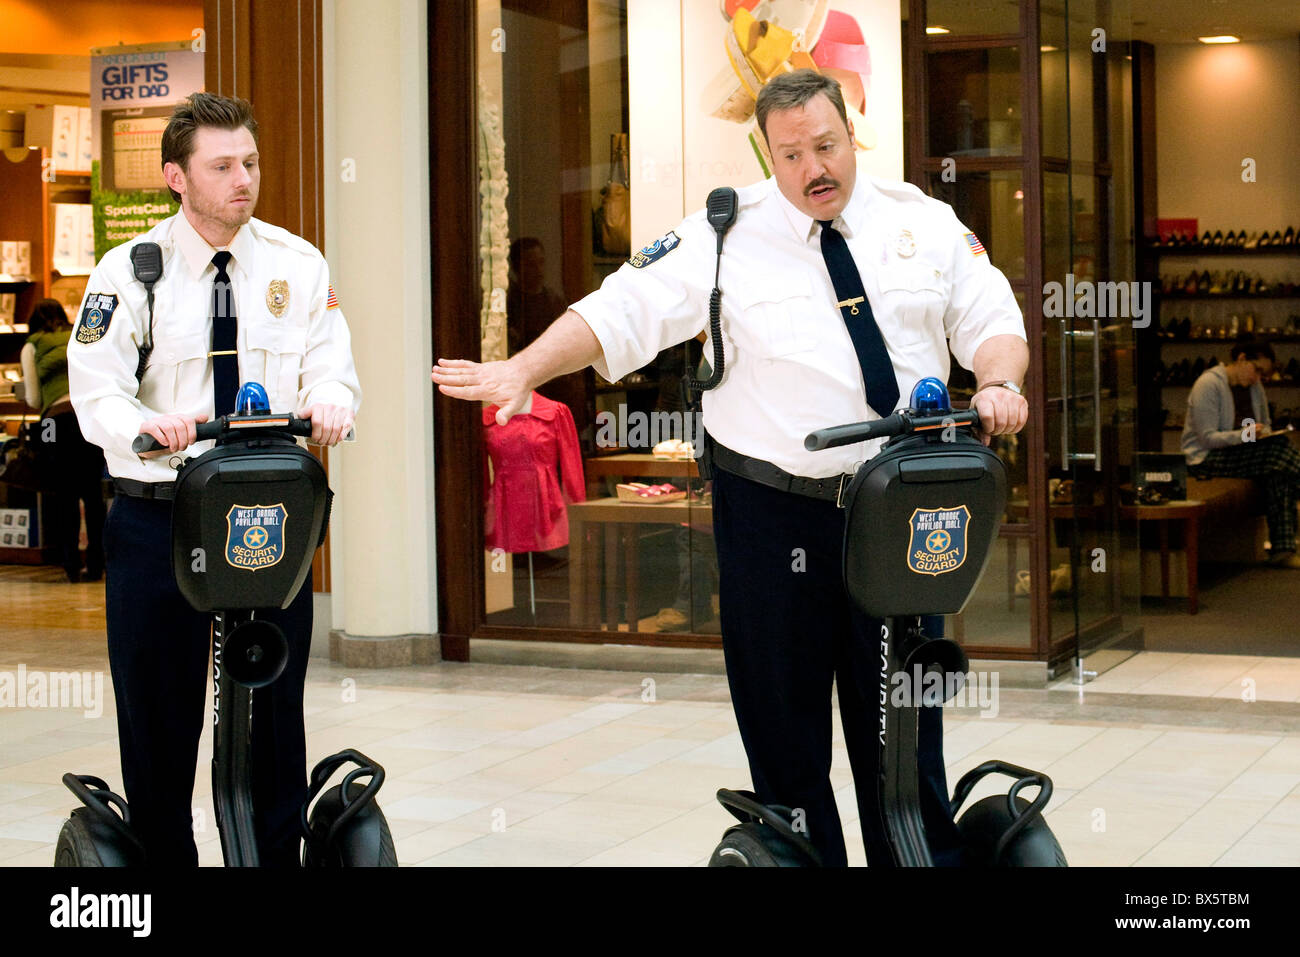 KEIR O'DONNELL & KEVIN JAMES PAUL BLART: MALL COP (2009) - Stock Image